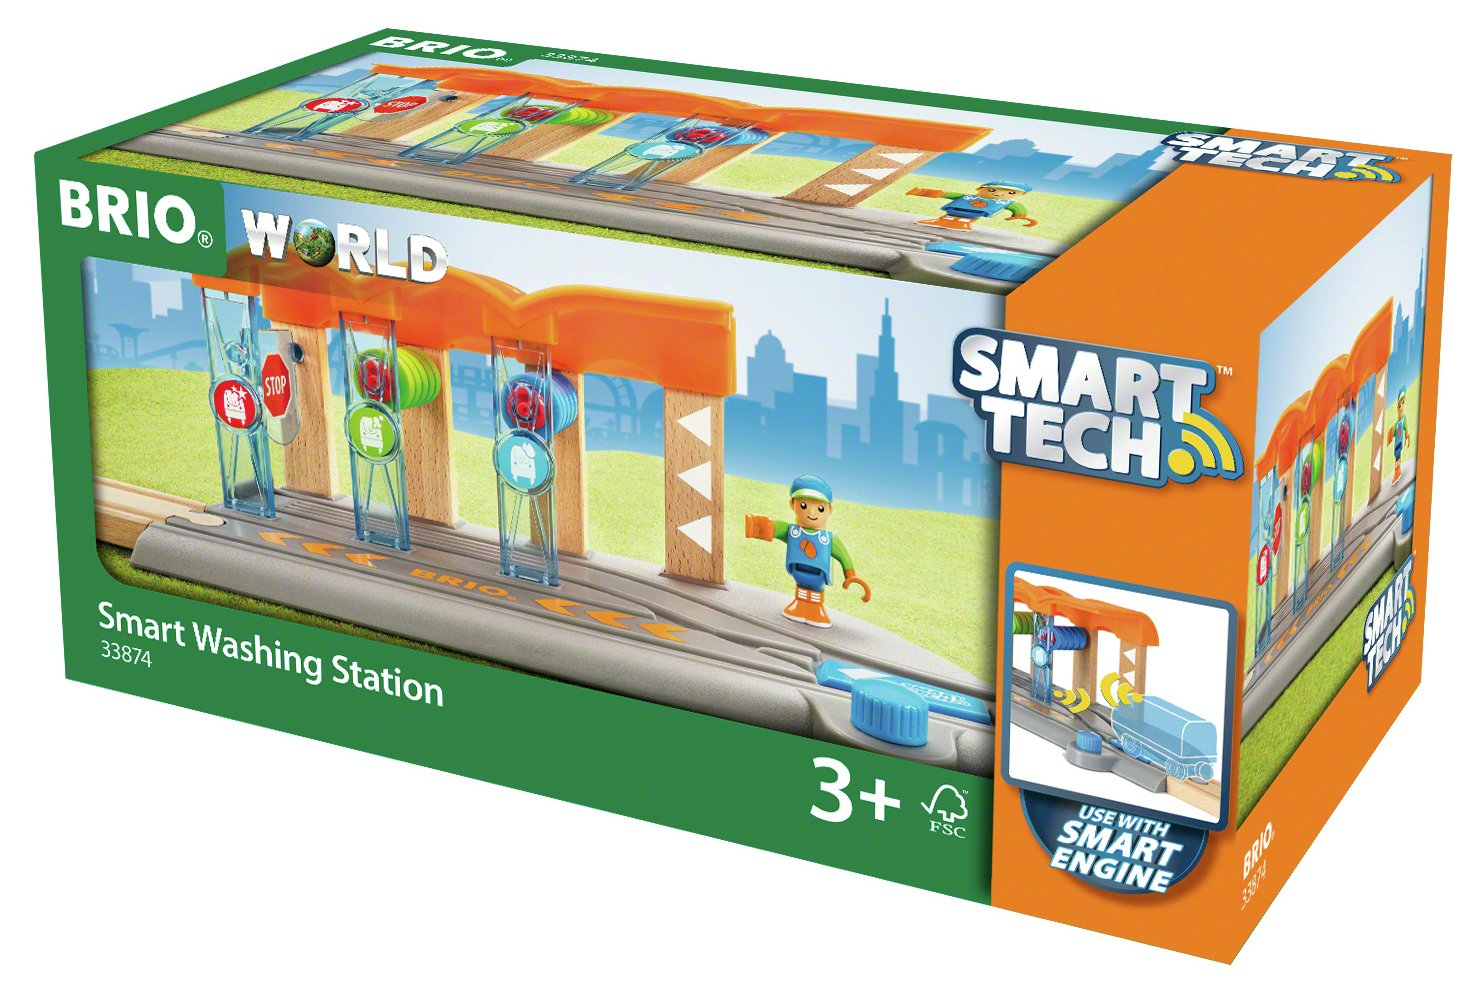 BRIO Smart Tech Washing Station Playset